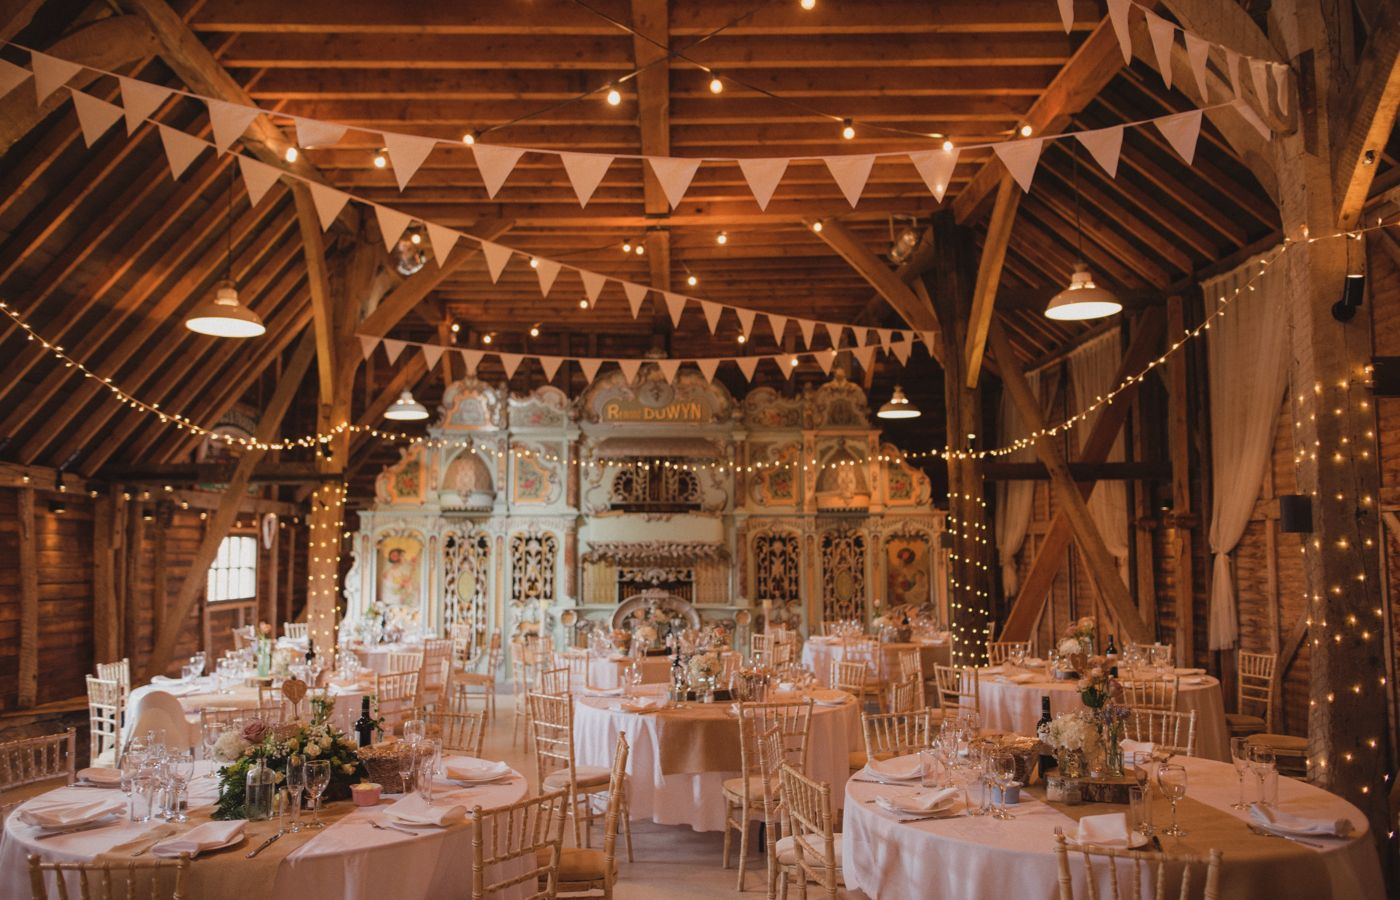 Free Wedding Venue Ideas.An Outdoor Wedding With Vintage Styling And Anna Campbell